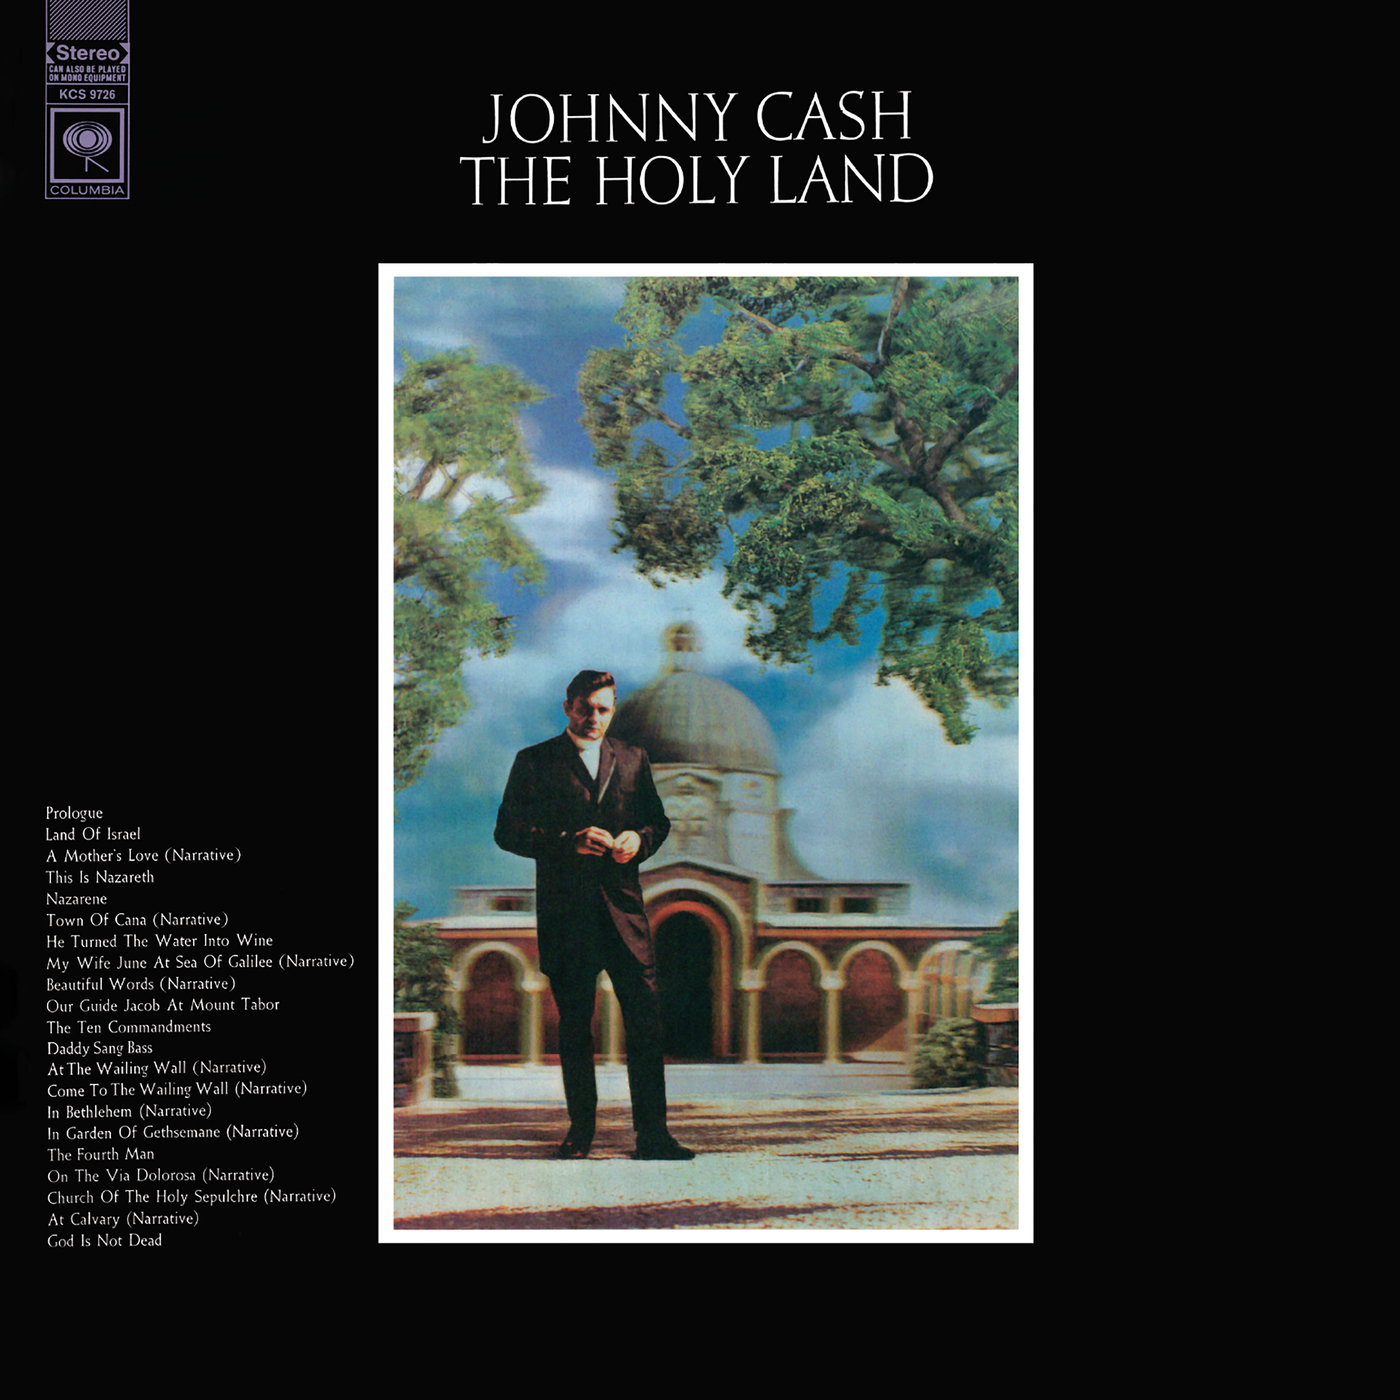 The Holy Land - Johnny Cash